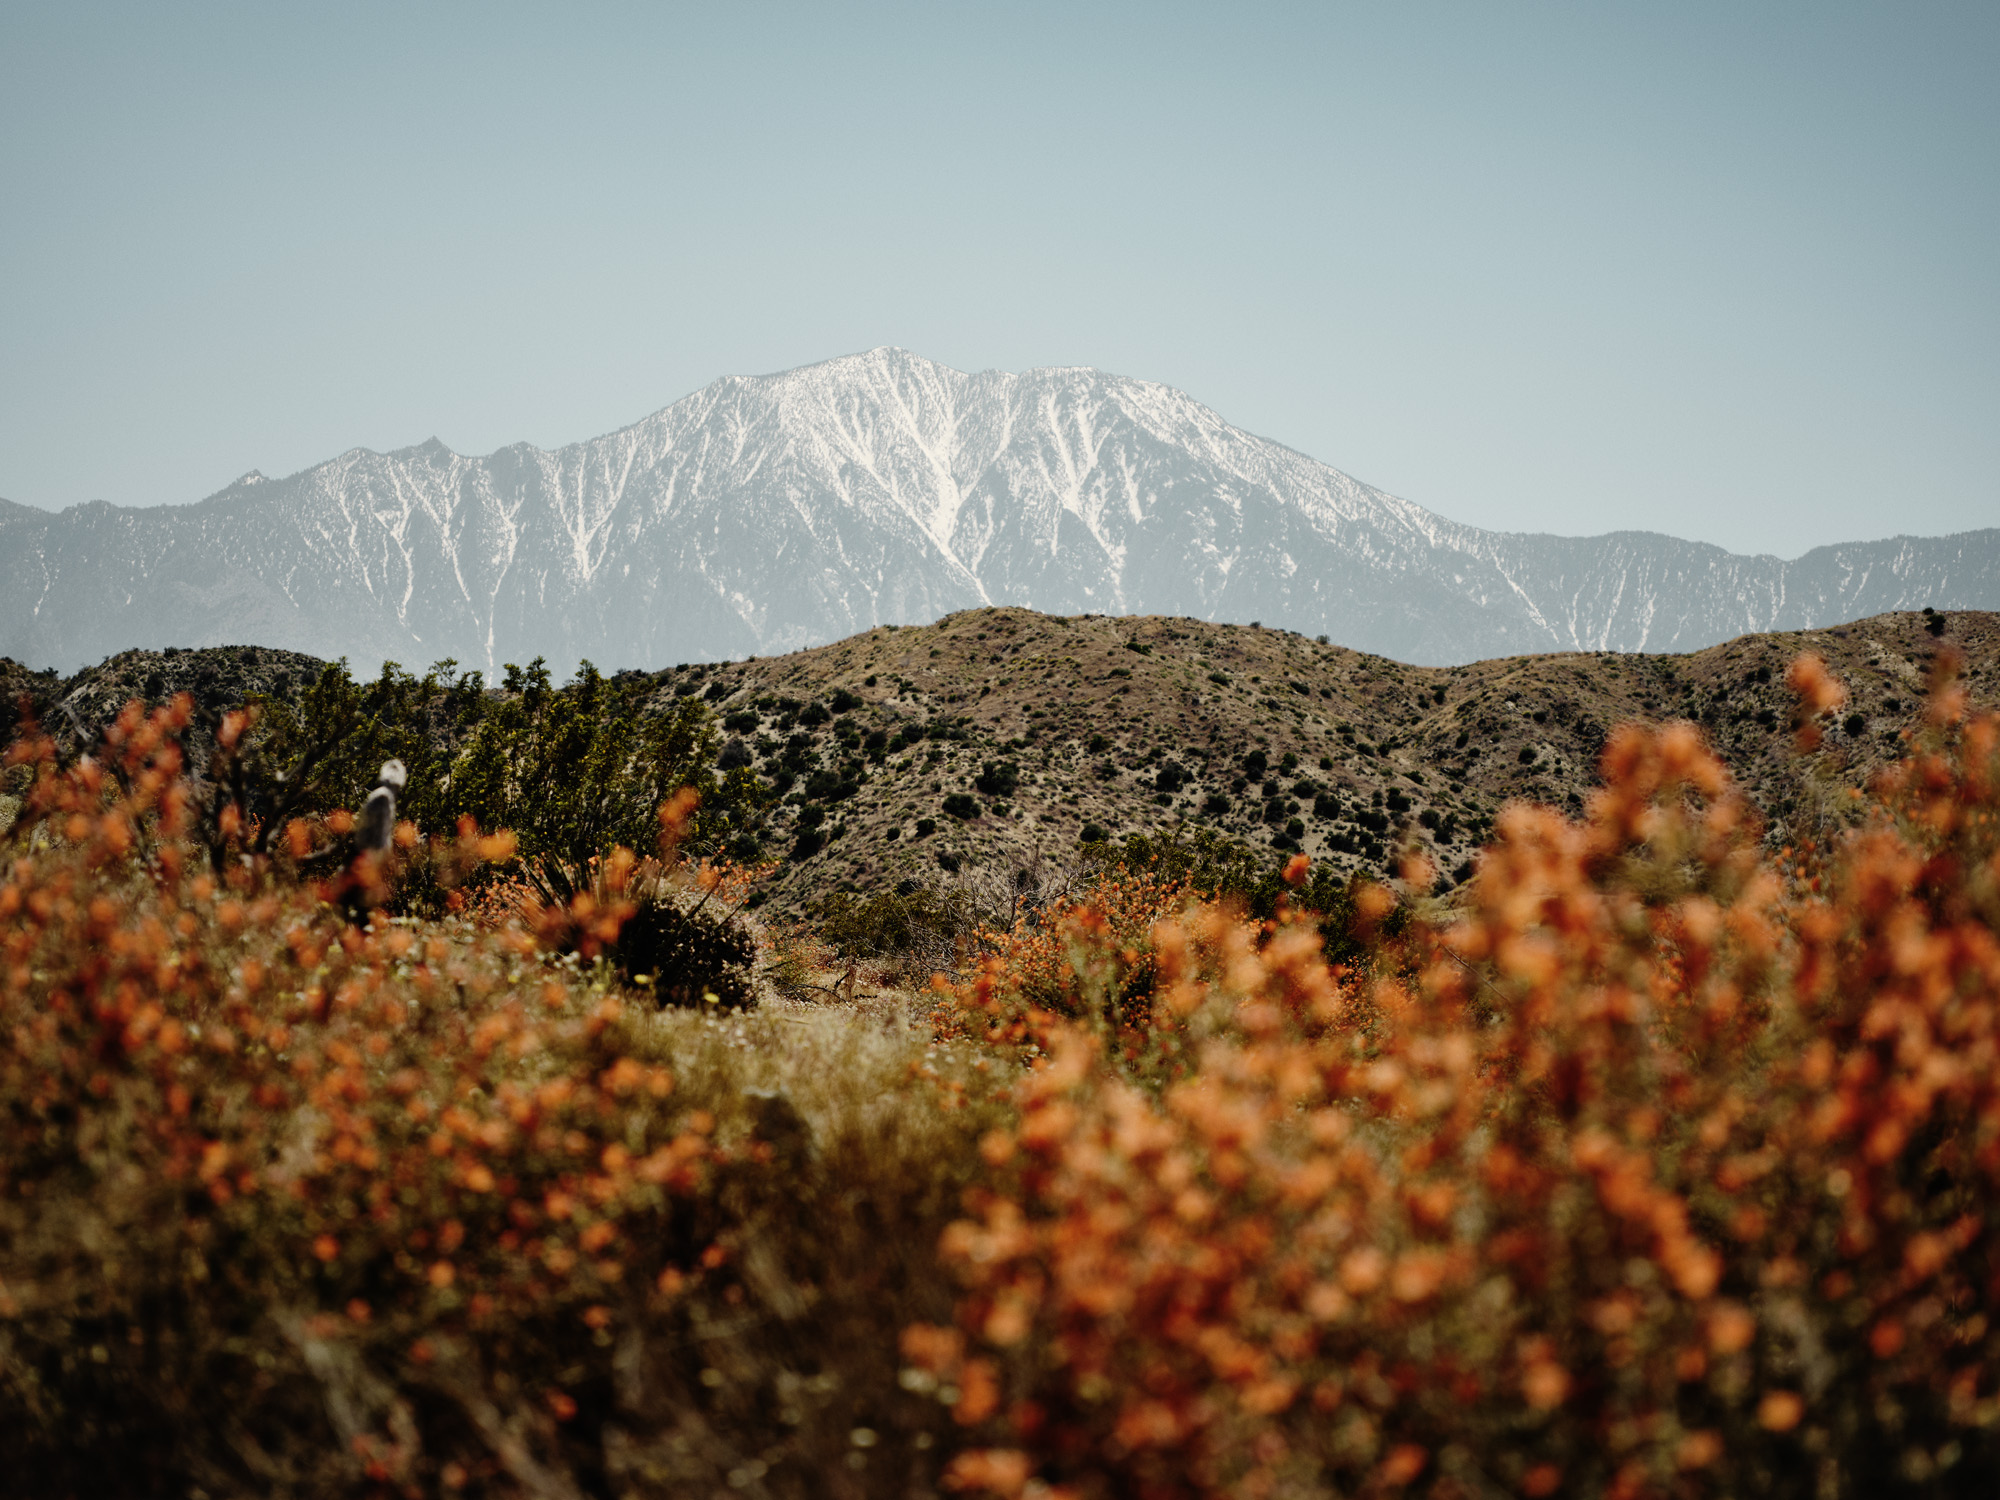 Morongo Valley, Greater Palm Springs. You start to find yourself looking for new angles and new ways you can see things, and becoming appreciative for a super bloom, creating images you didn't really envisage happening where you were.